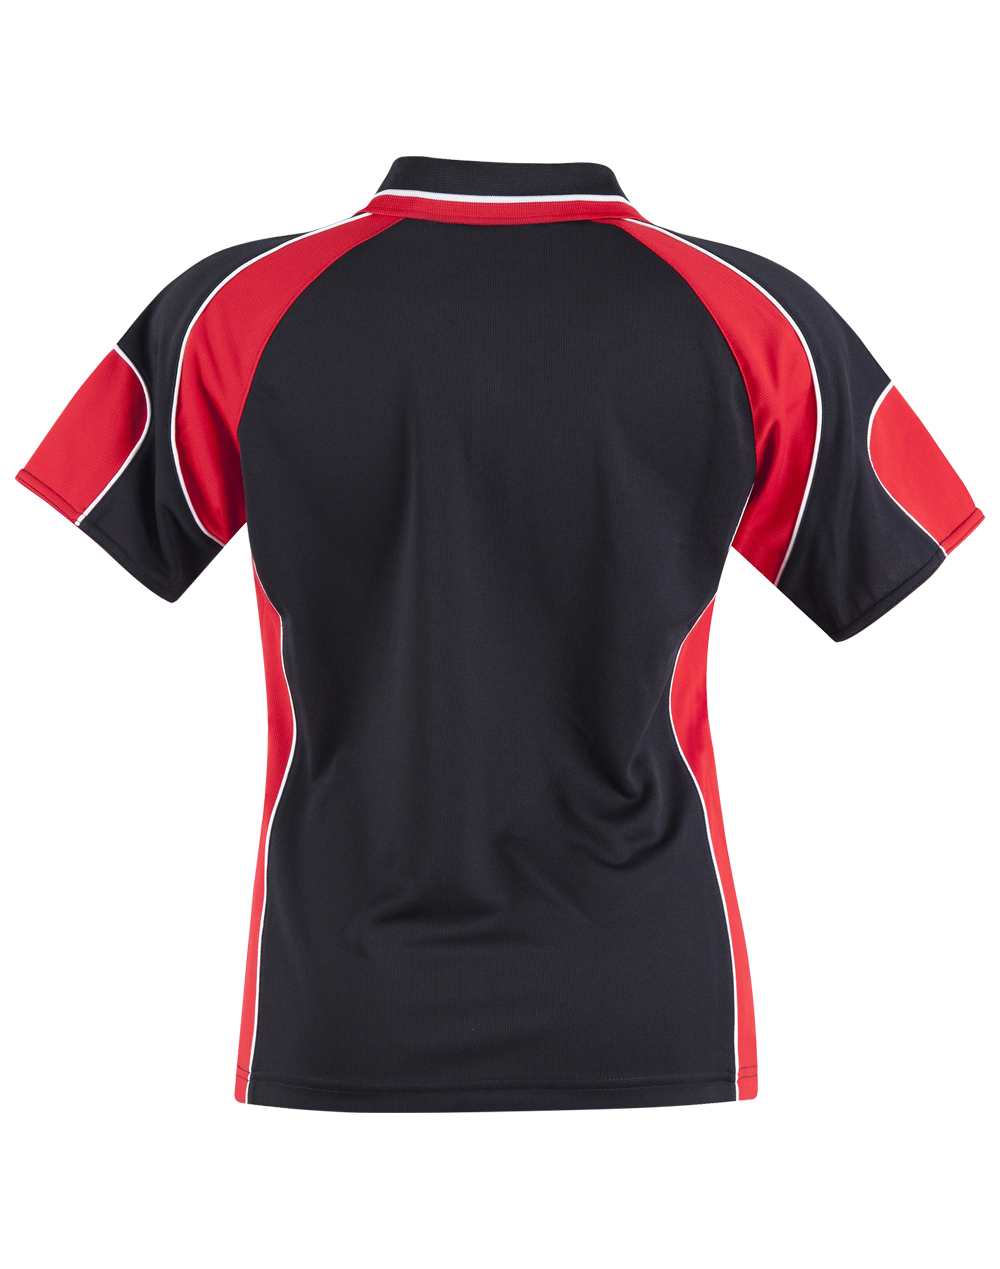 https://s3-ap-southeast-1.amazonaws.com/ws-imgs/POLOSHIRTS/PS62_BlackRed_Back.jpg